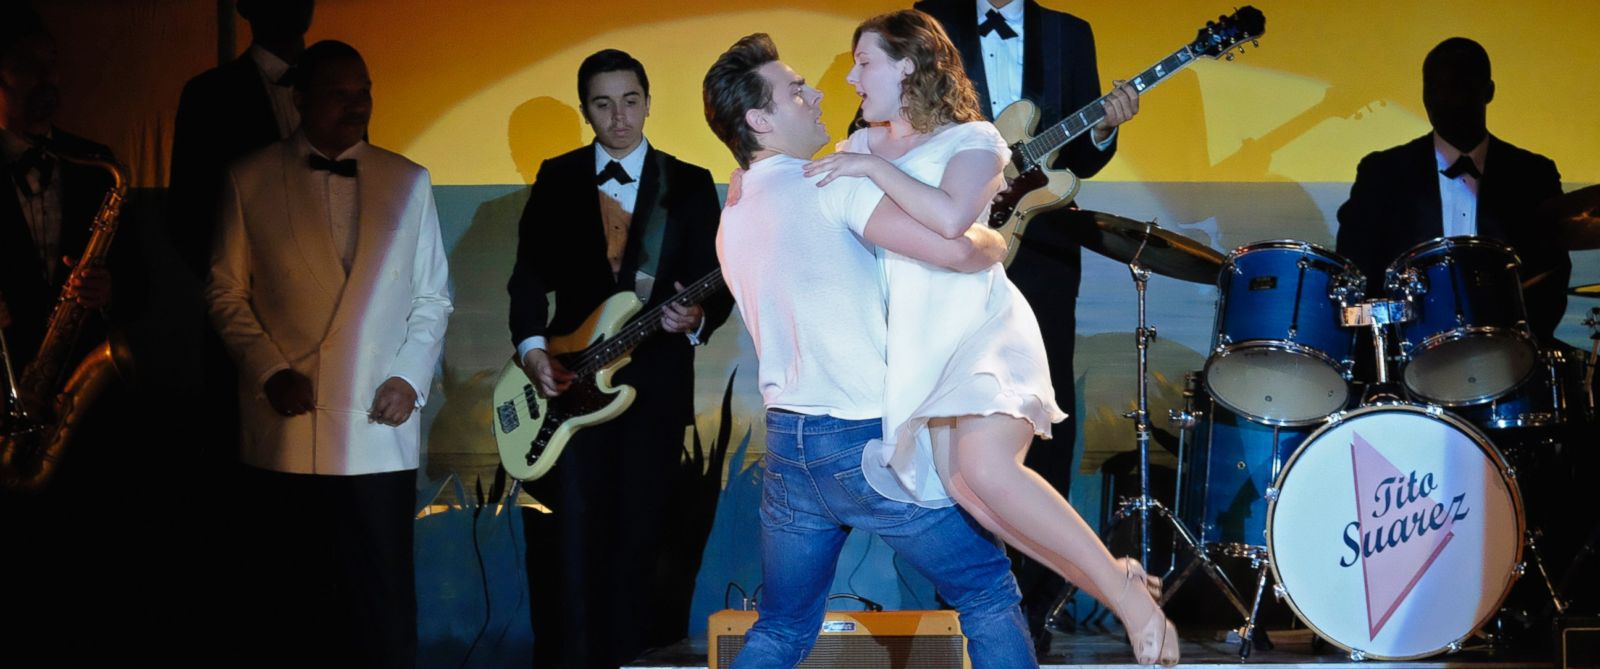 """PHOTO: Colt Prattes and Abigail Breslin in the remake of """"Dirty Dancing,"""" that will air on ABC TV."""